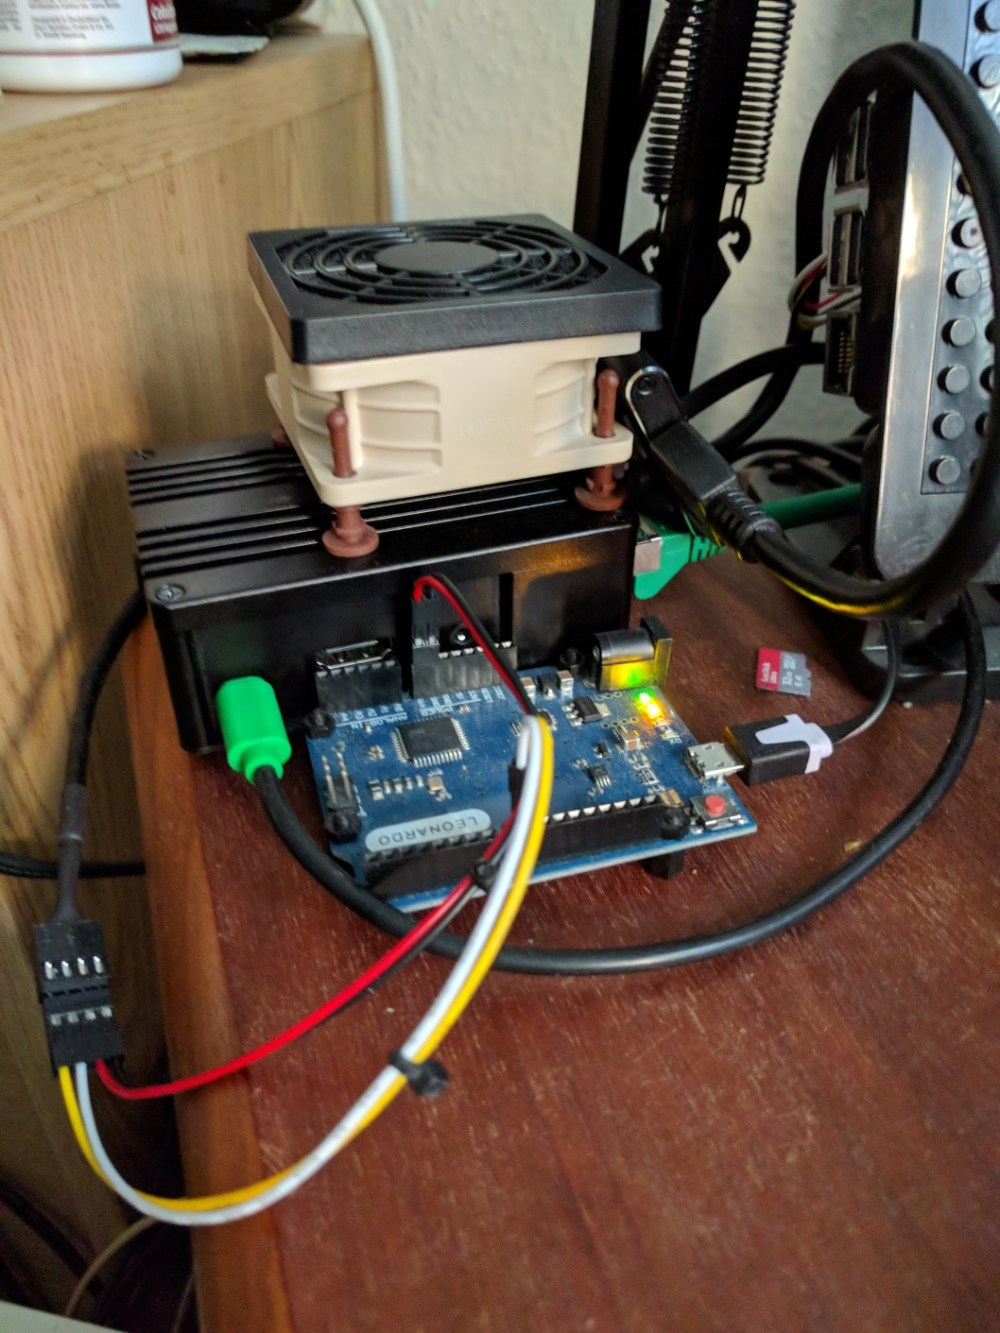 medium resolution of leonardo controlled 25khz pwm fan leonardo controlled 25khz pwm fan jpg1058 1411 630 kb